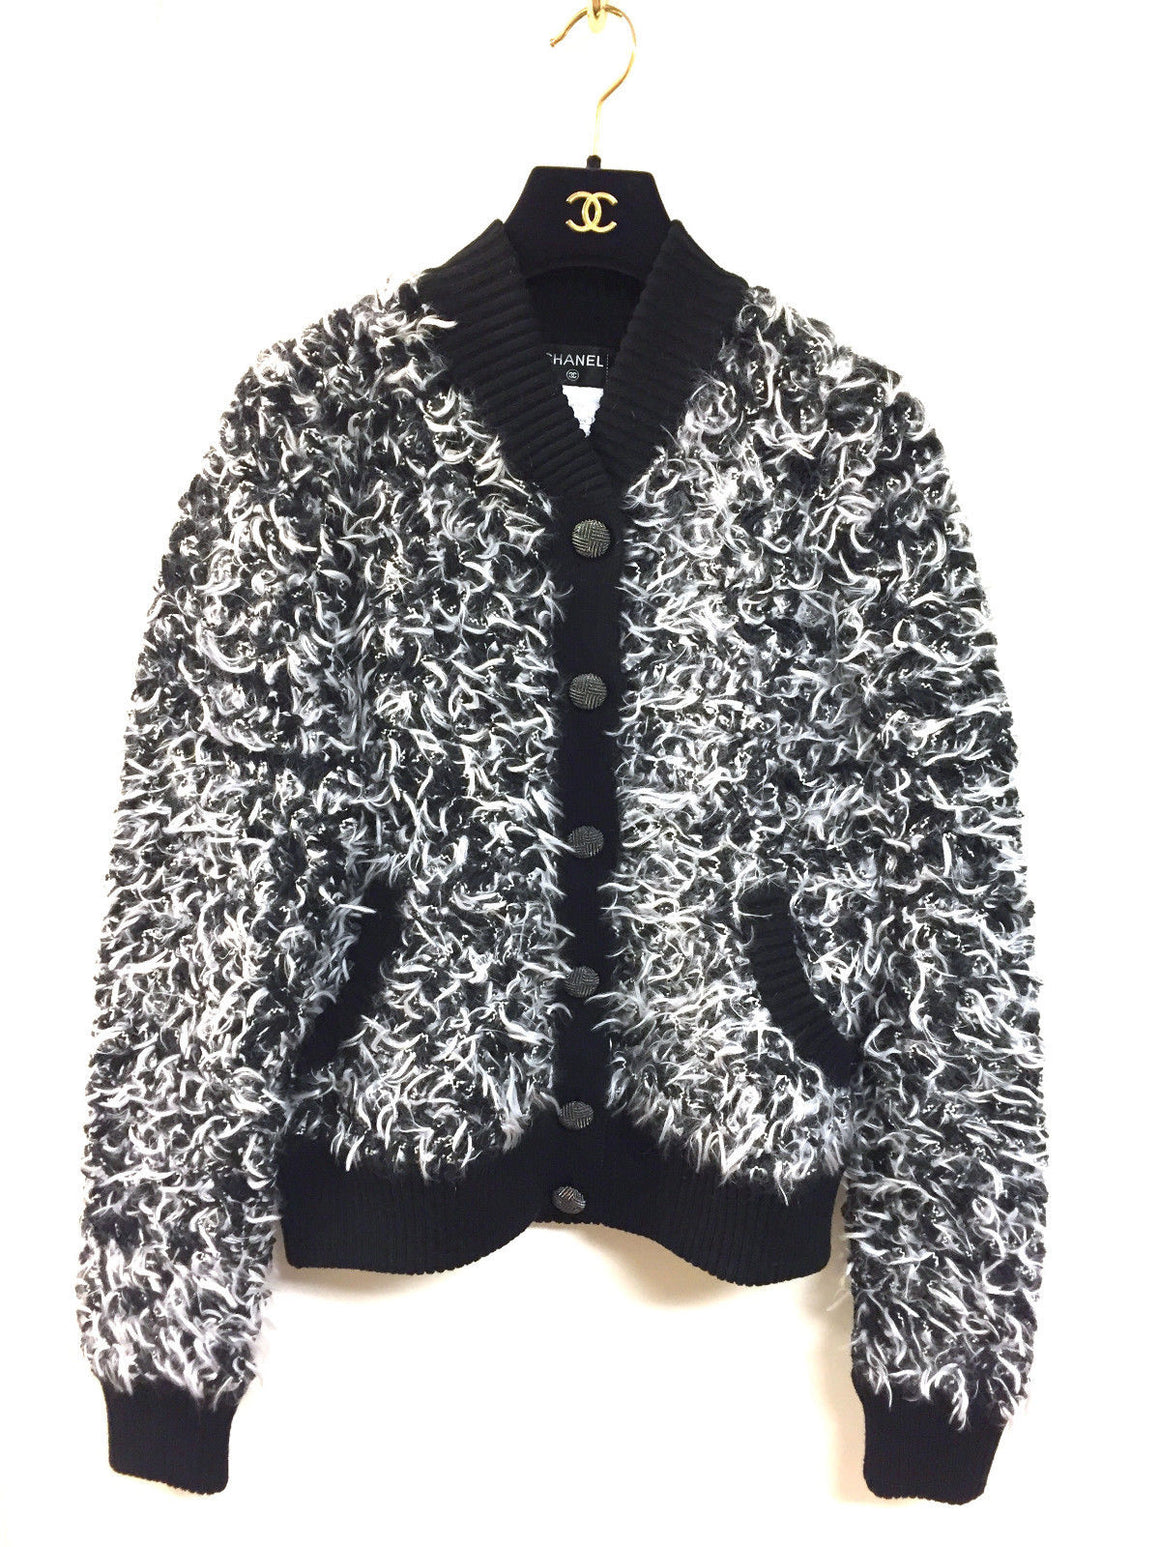 bisbiz.com CHANEL Black & White Cashmere-Blend Furry Knit Cardigan Jacket Top Size: FR 40 / Medium - Bis Luxury Resale